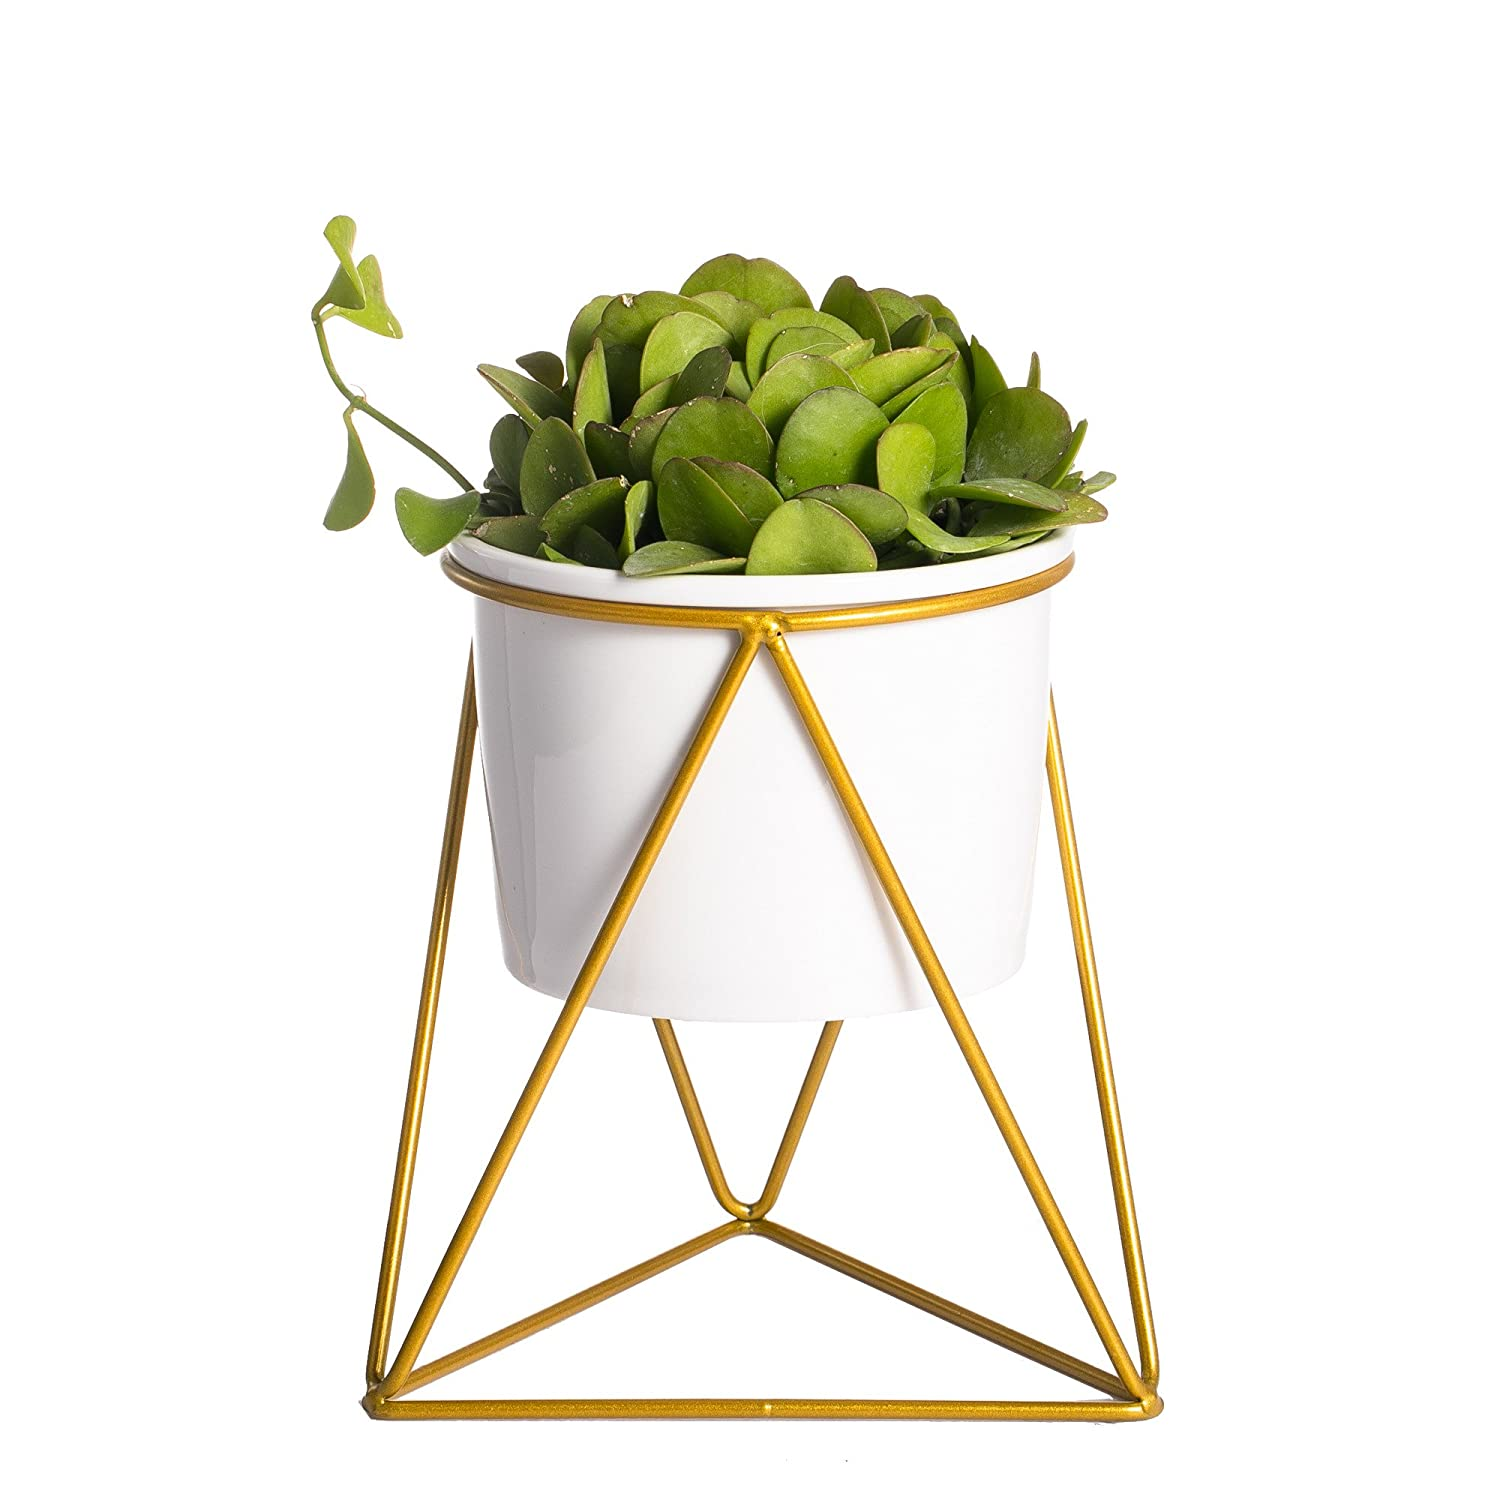 NCYP Geometric Iron Rack Holder Metal Stand Gold with White Ceramic Planter Indoor Desktop Garden Pot for Succulents Herbs Cactus Plants Modern Style Window Sill Decorative Bonsai